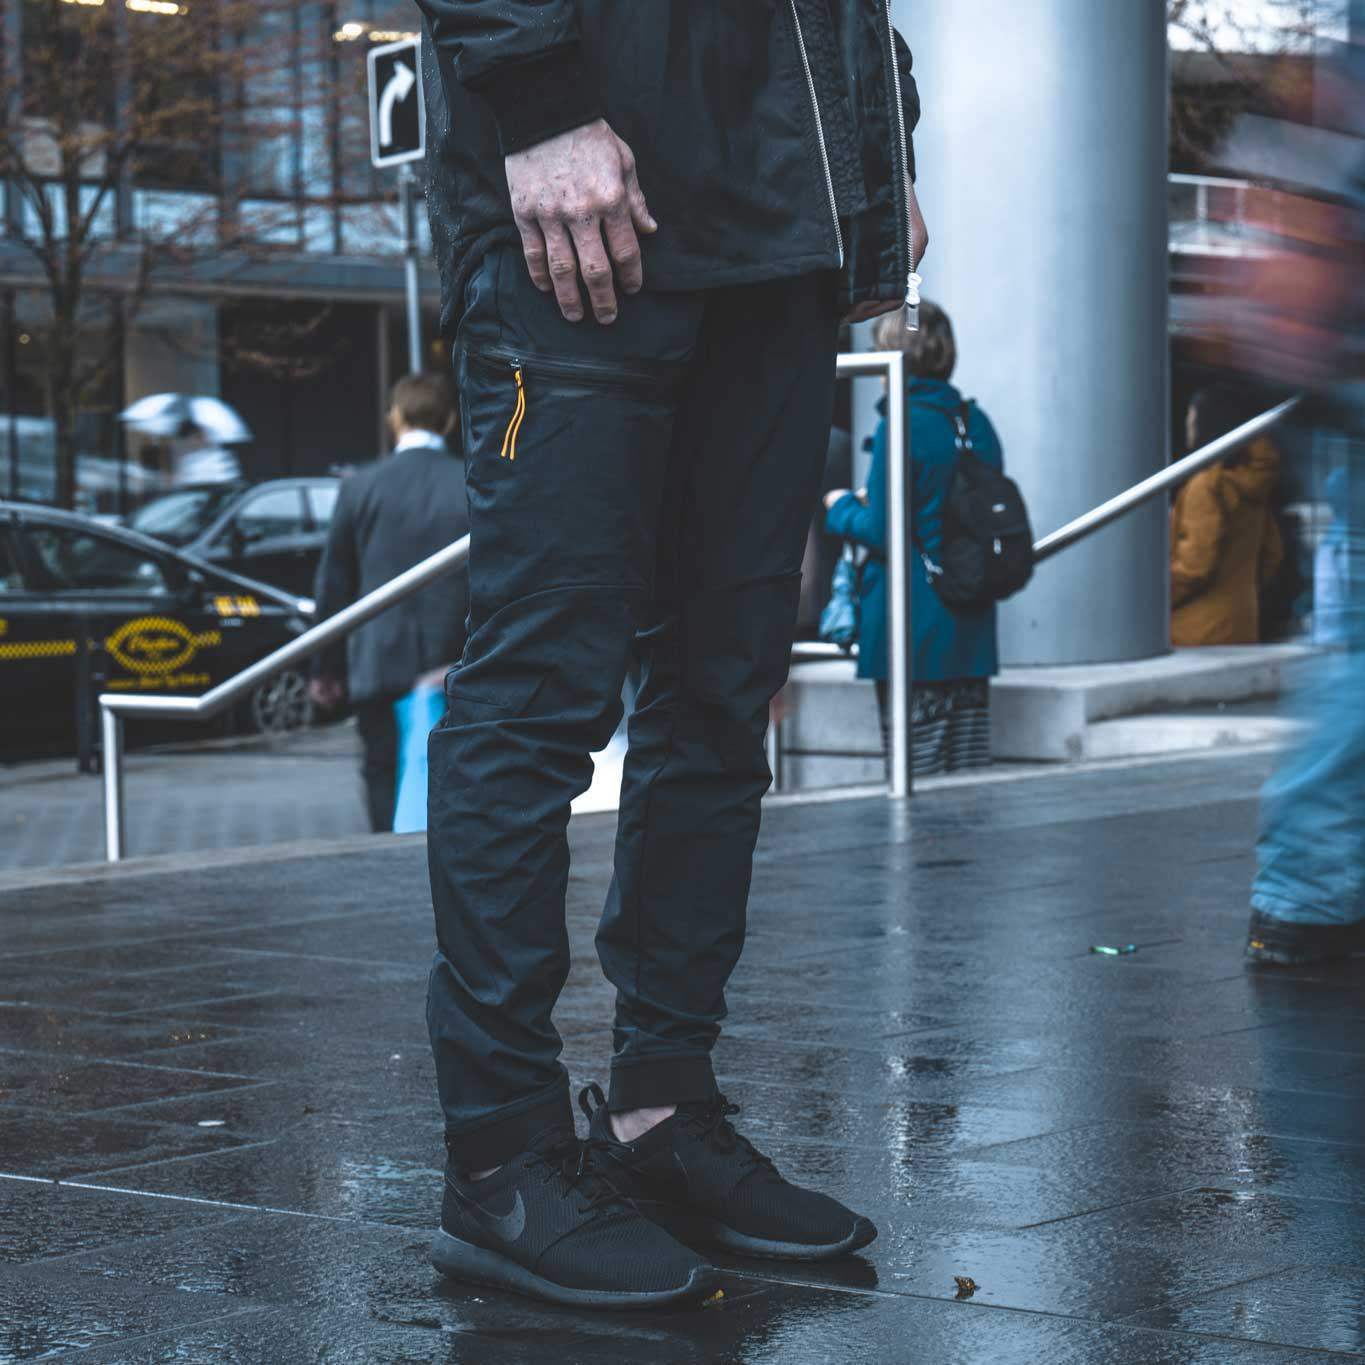 Man standing in city wearing the Brise Pant